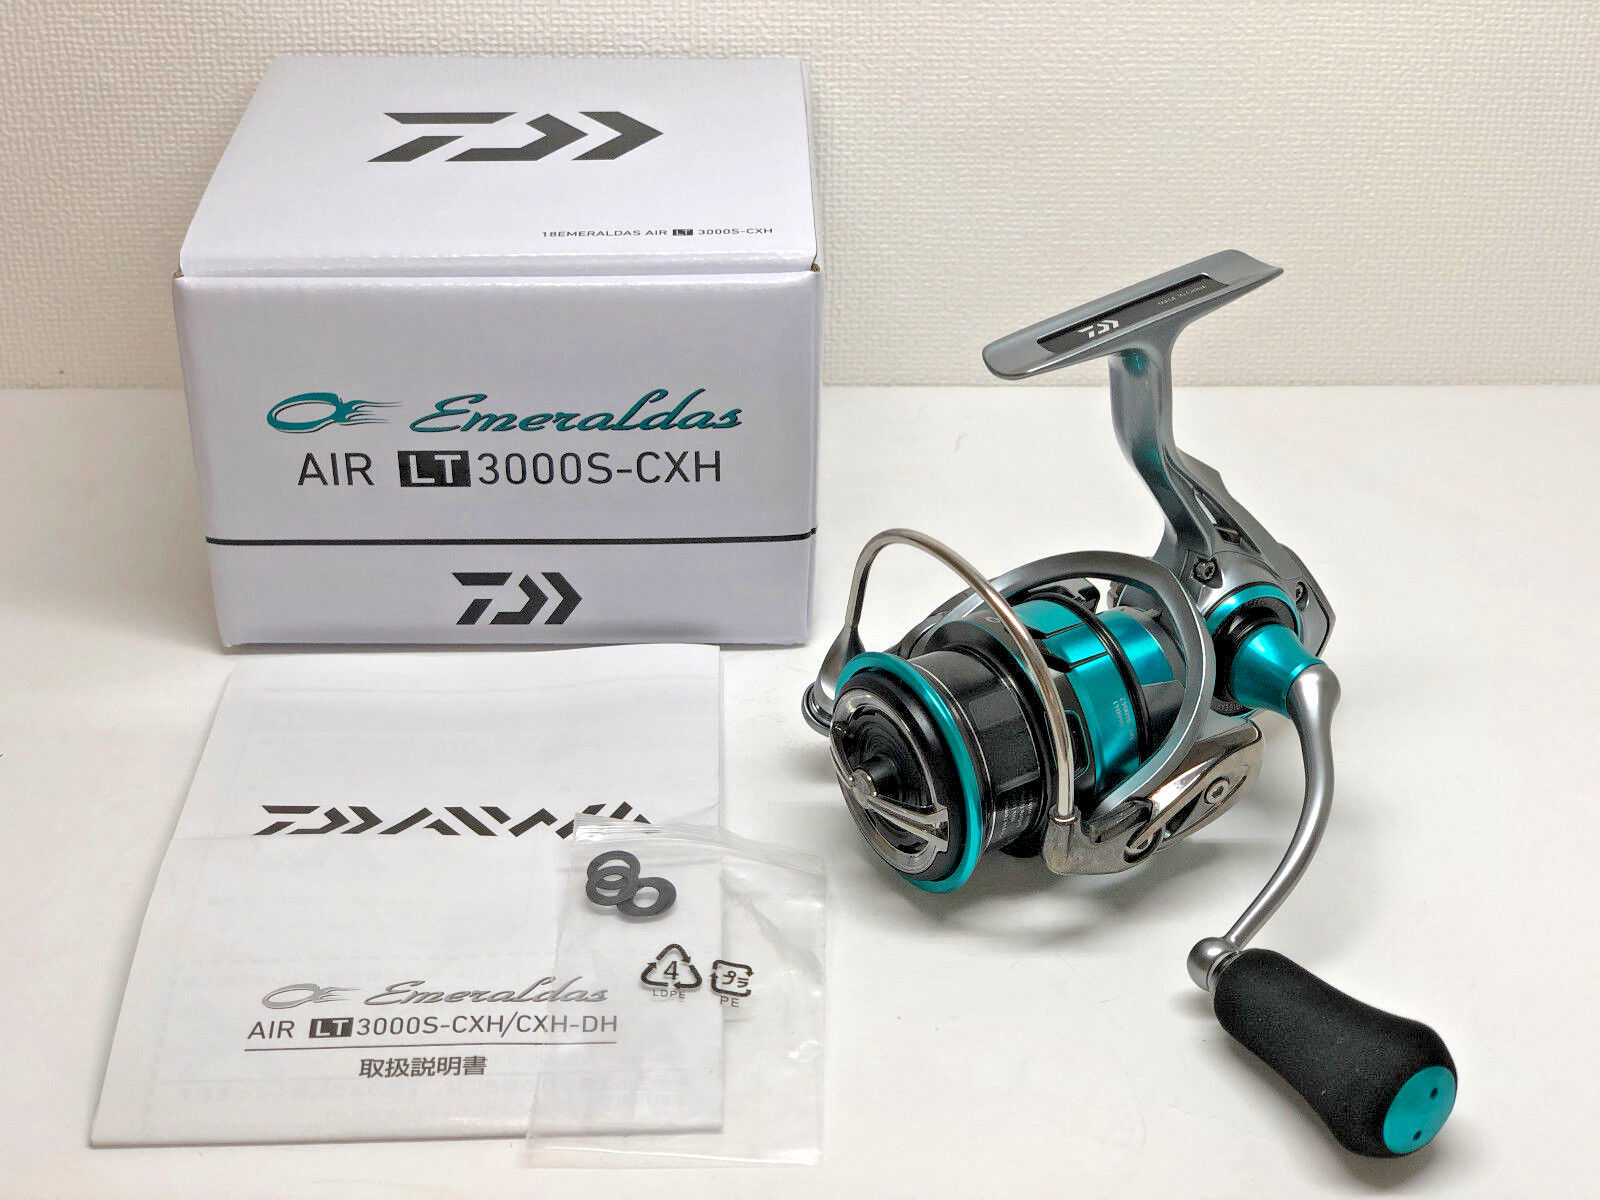 18 EMERALDAS AIR LT 3000S-CXH  - Free Shipping from Japan